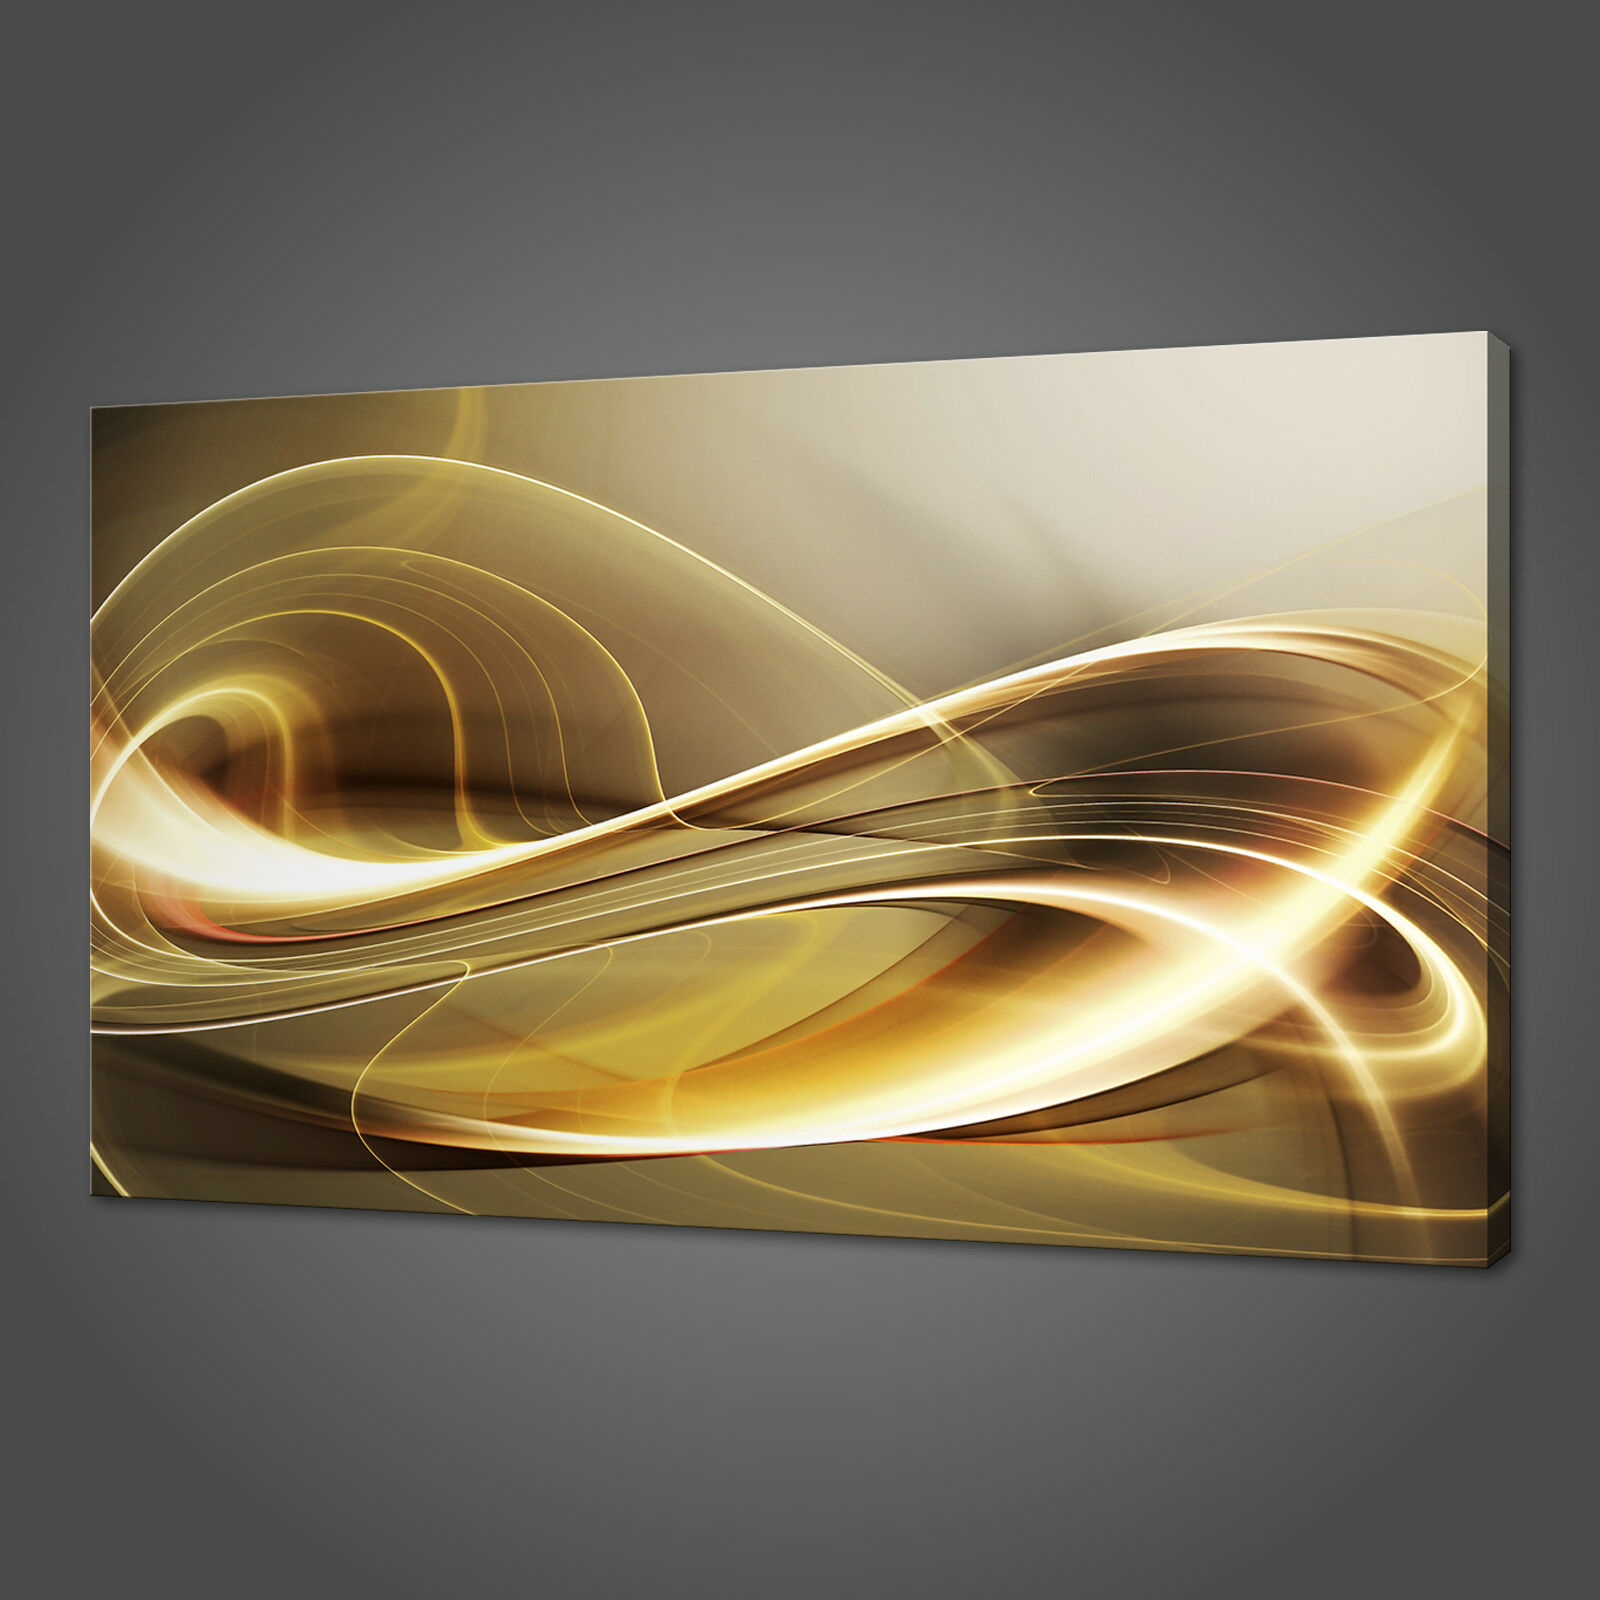 Abstract VAGUE D'OR photo sur toile Imprimer Wall Art Home Decor livraison gratuite